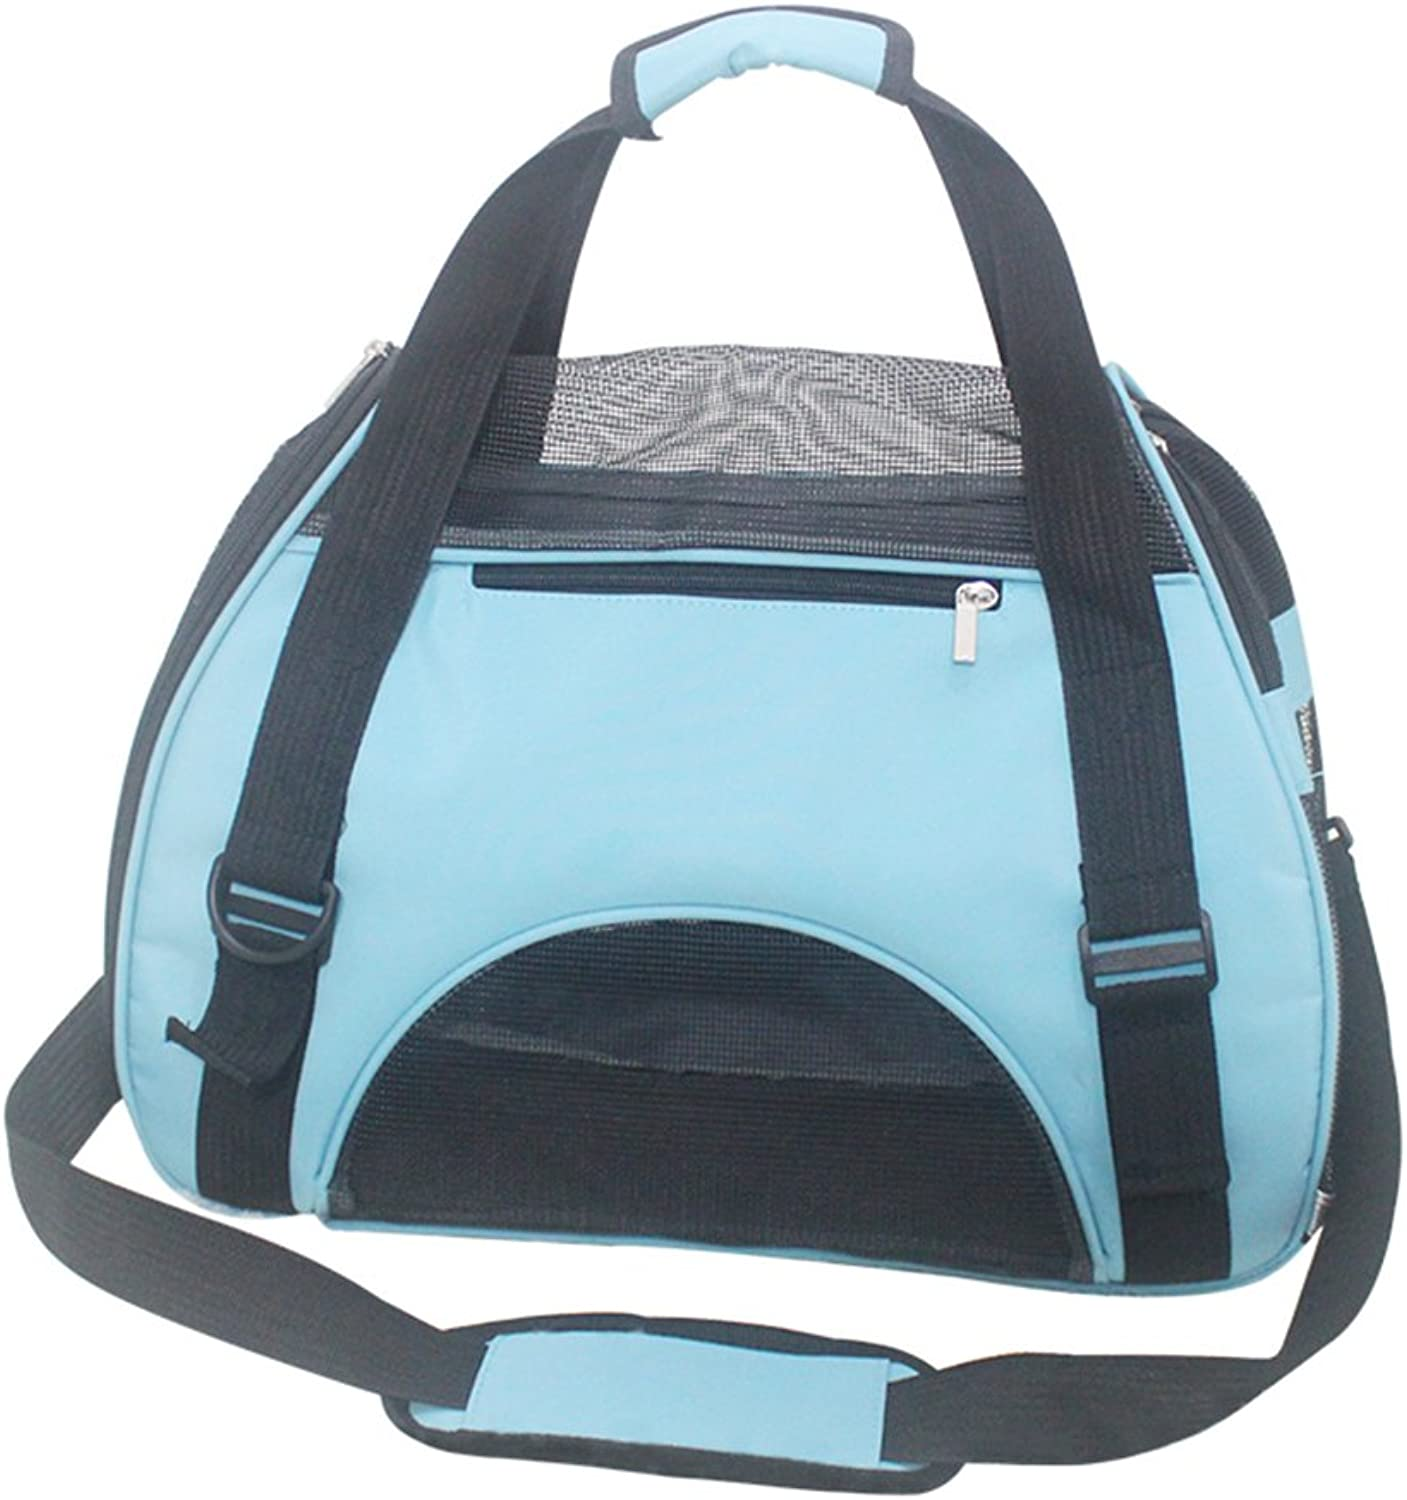 Pet Carrier Backpack SoftSided Strap Outdoor Travel Backpack Carrying Bag for Dogs and Cats Pet Carrier (Size   S)